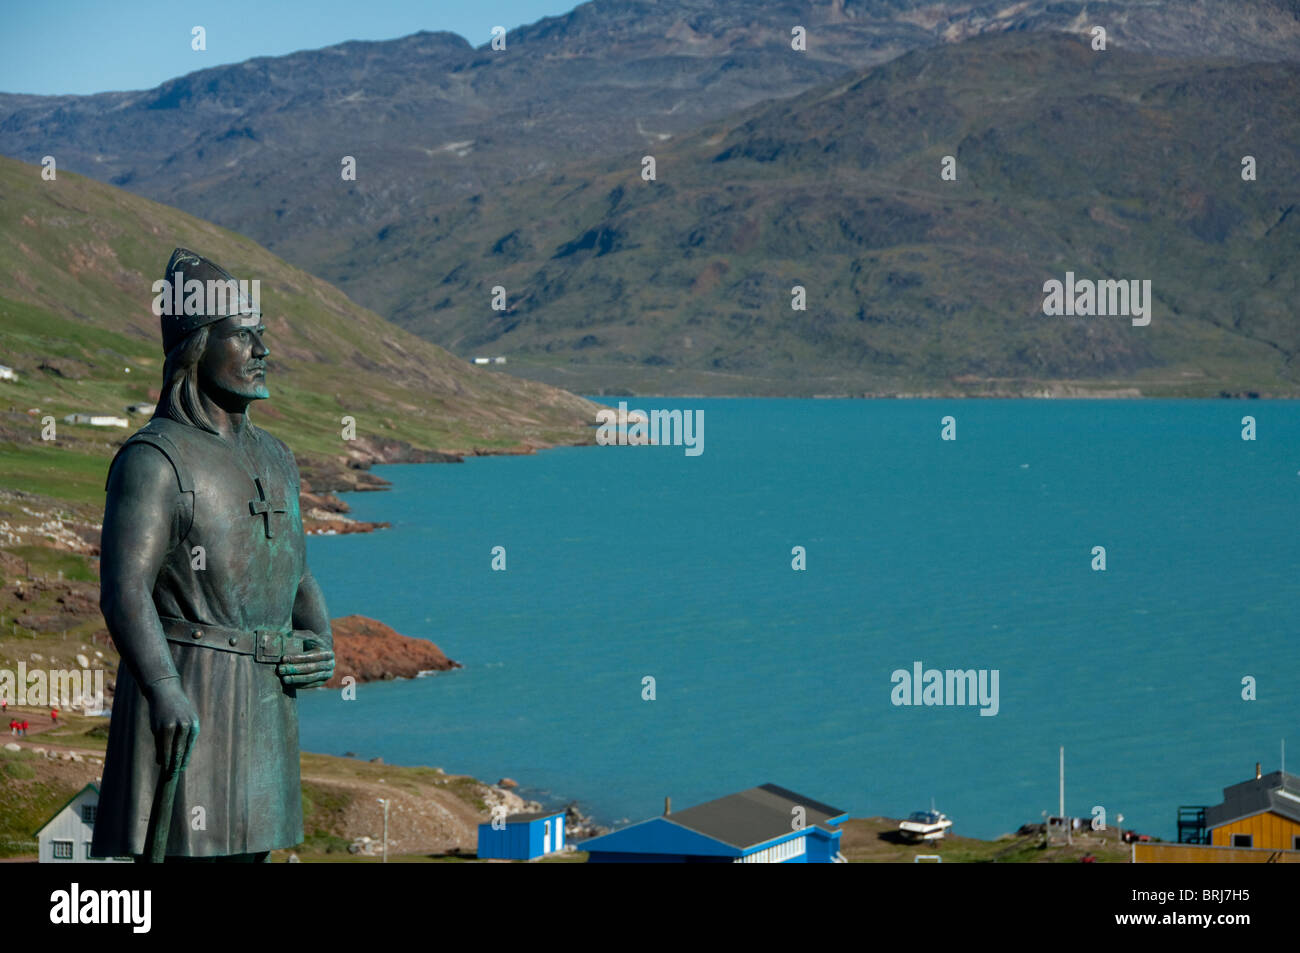 Greenland, Brattahlid (aka Qassiarsuk). Overview of settlement started by Erik the Red. Statue of famous Norse explorer. - Stock Image